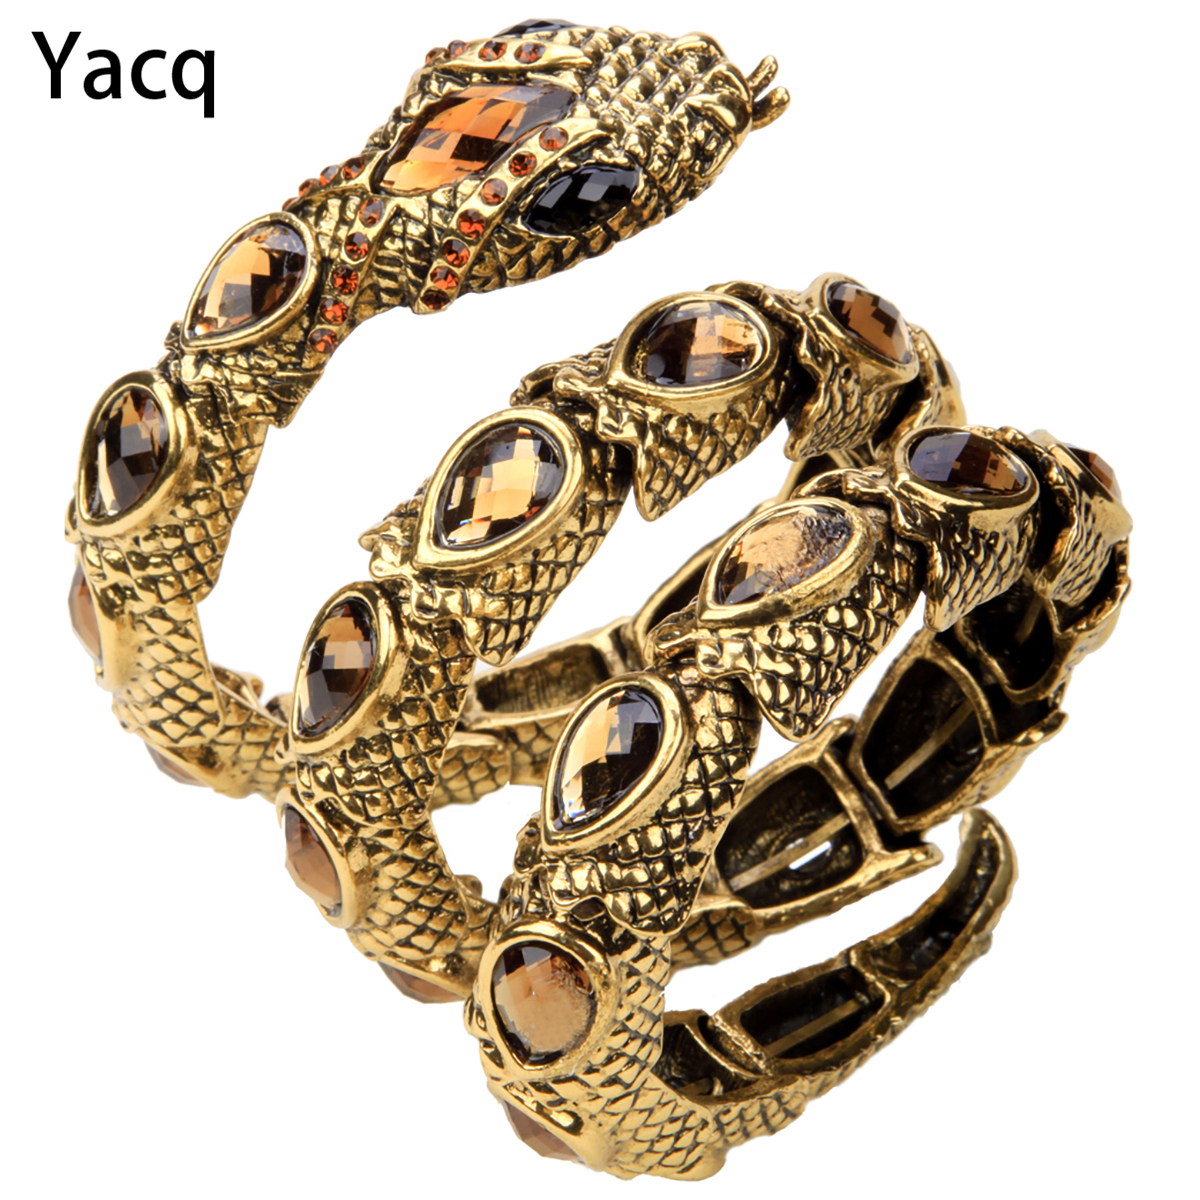 YACQ Stretch Snake Bracelet Armlet Upper Arm Cuff Women Punk Rock Crystal Bangle Jewelry Gold Silver Color Dropshipping A32 цена